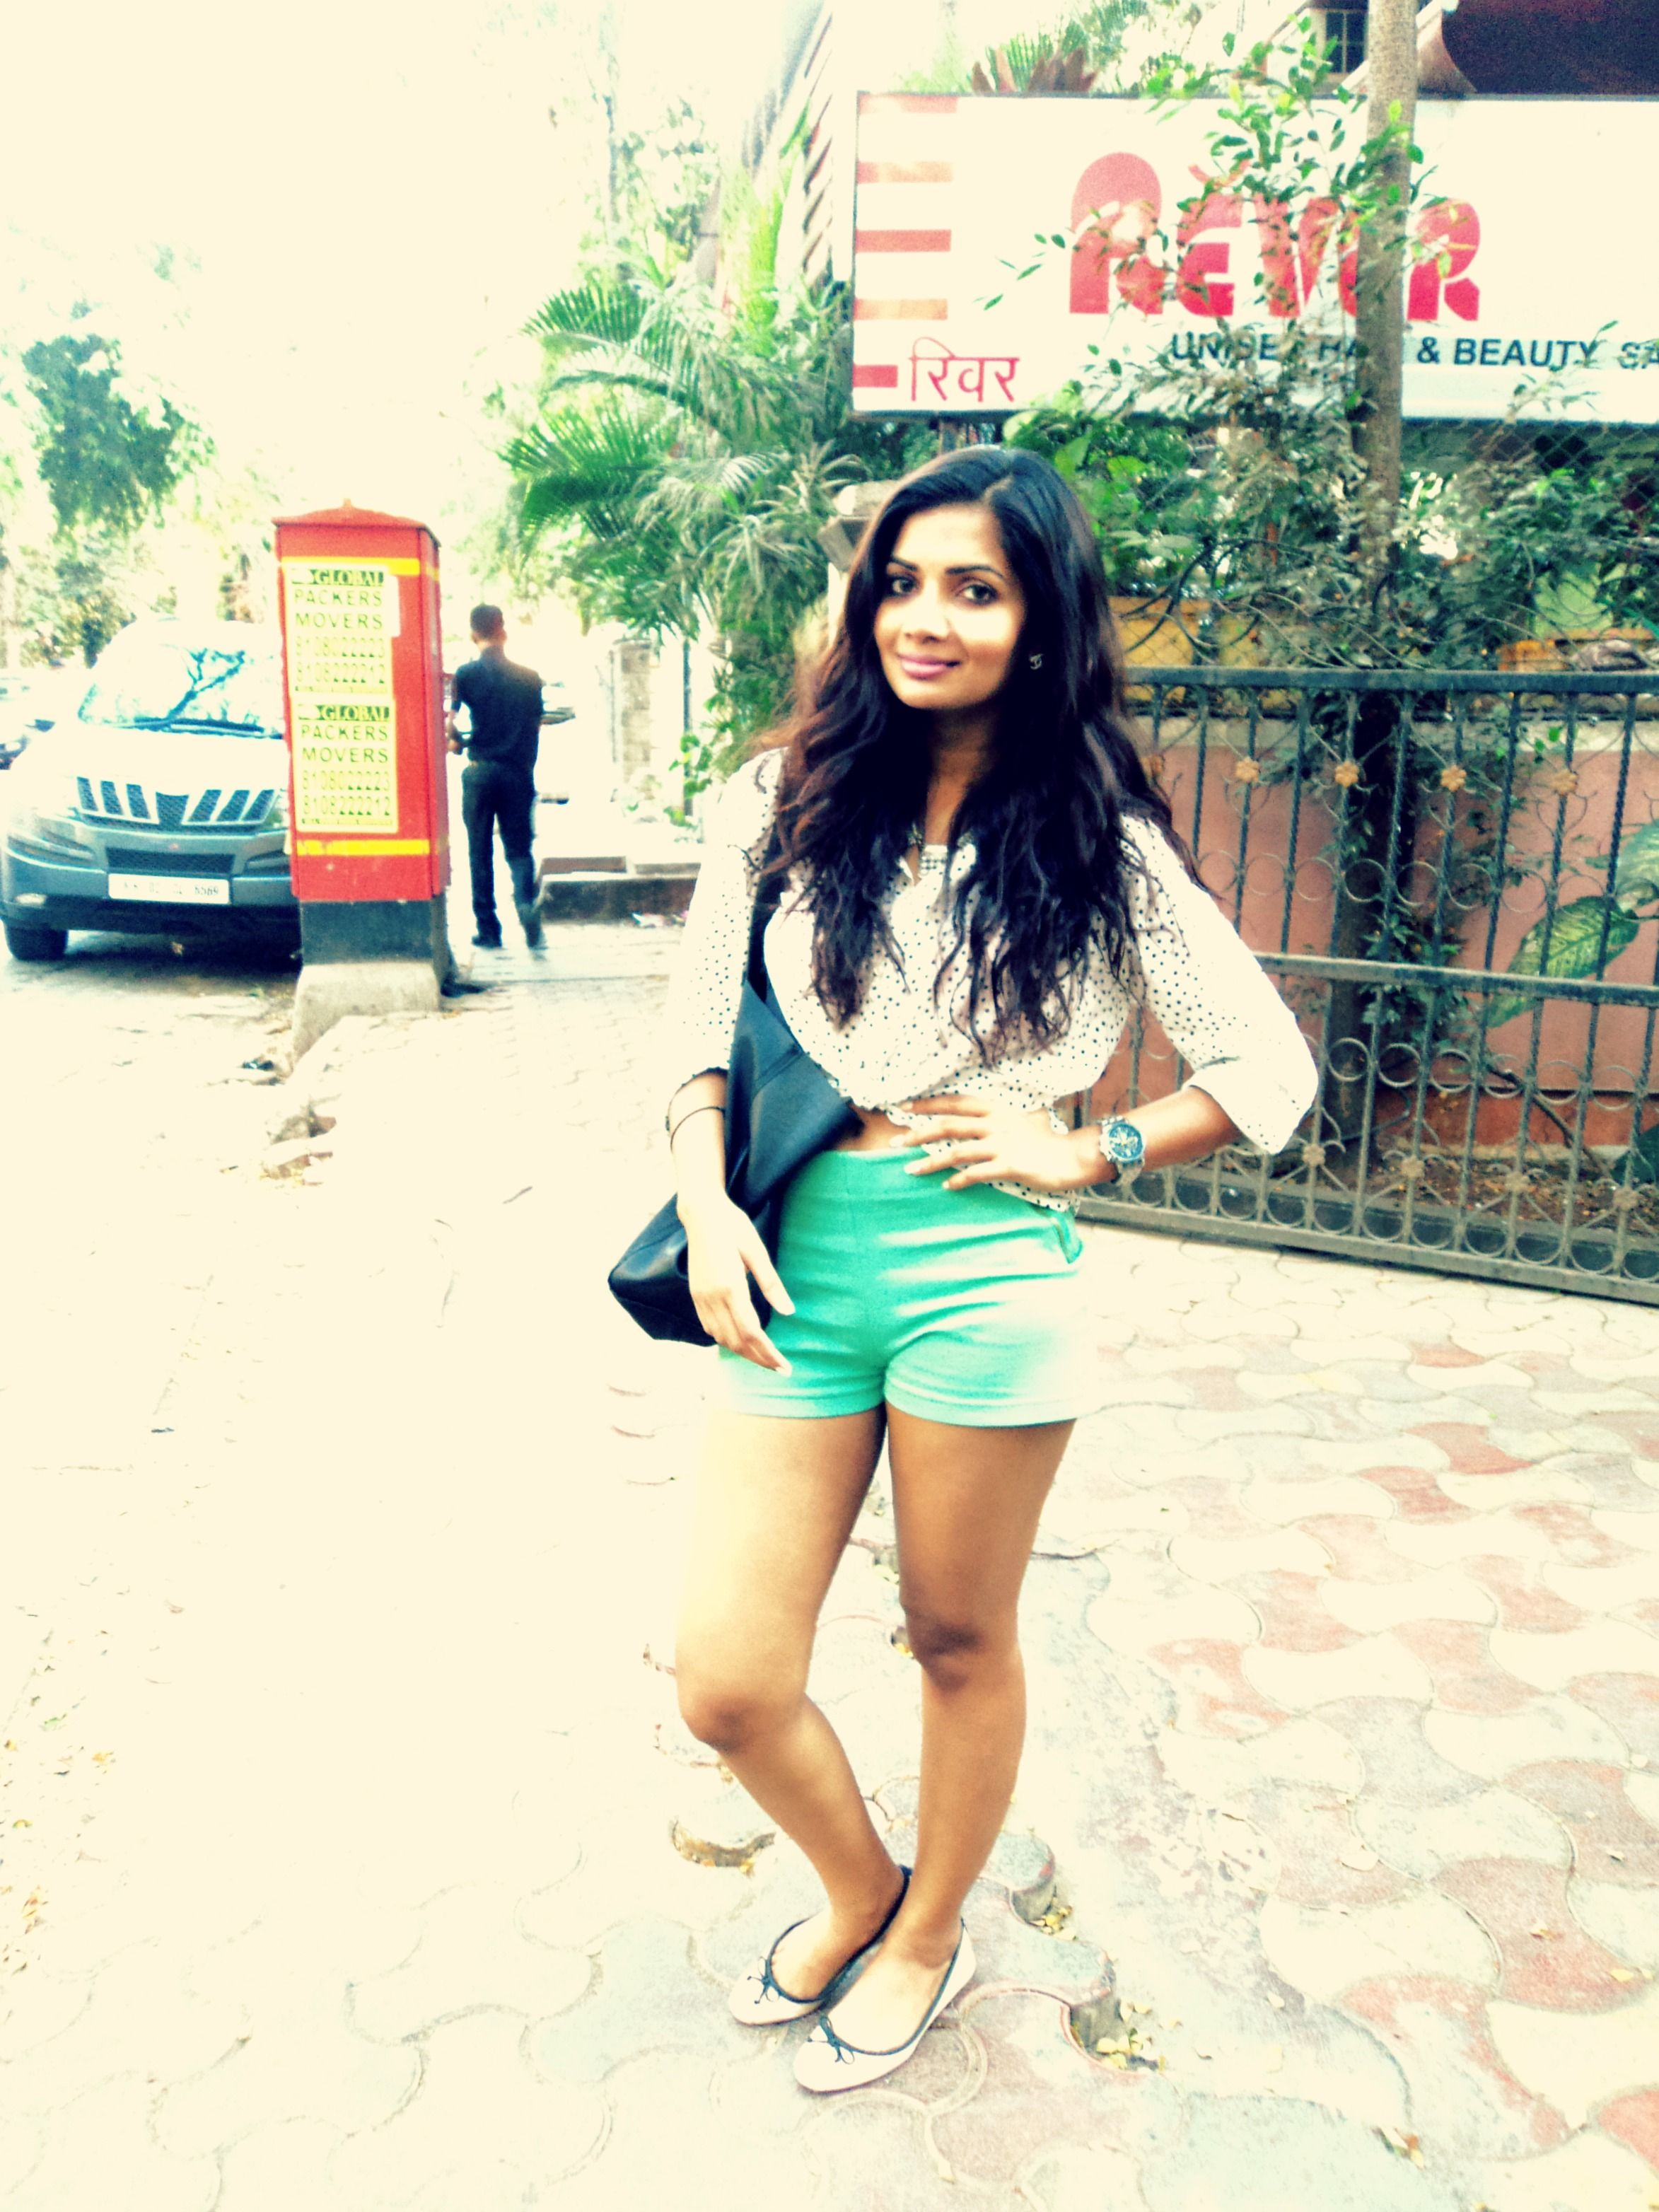 21 Mint Green Shorts Outfits For Girls 21 Mint Green Shorts Outfits For Girls new foto